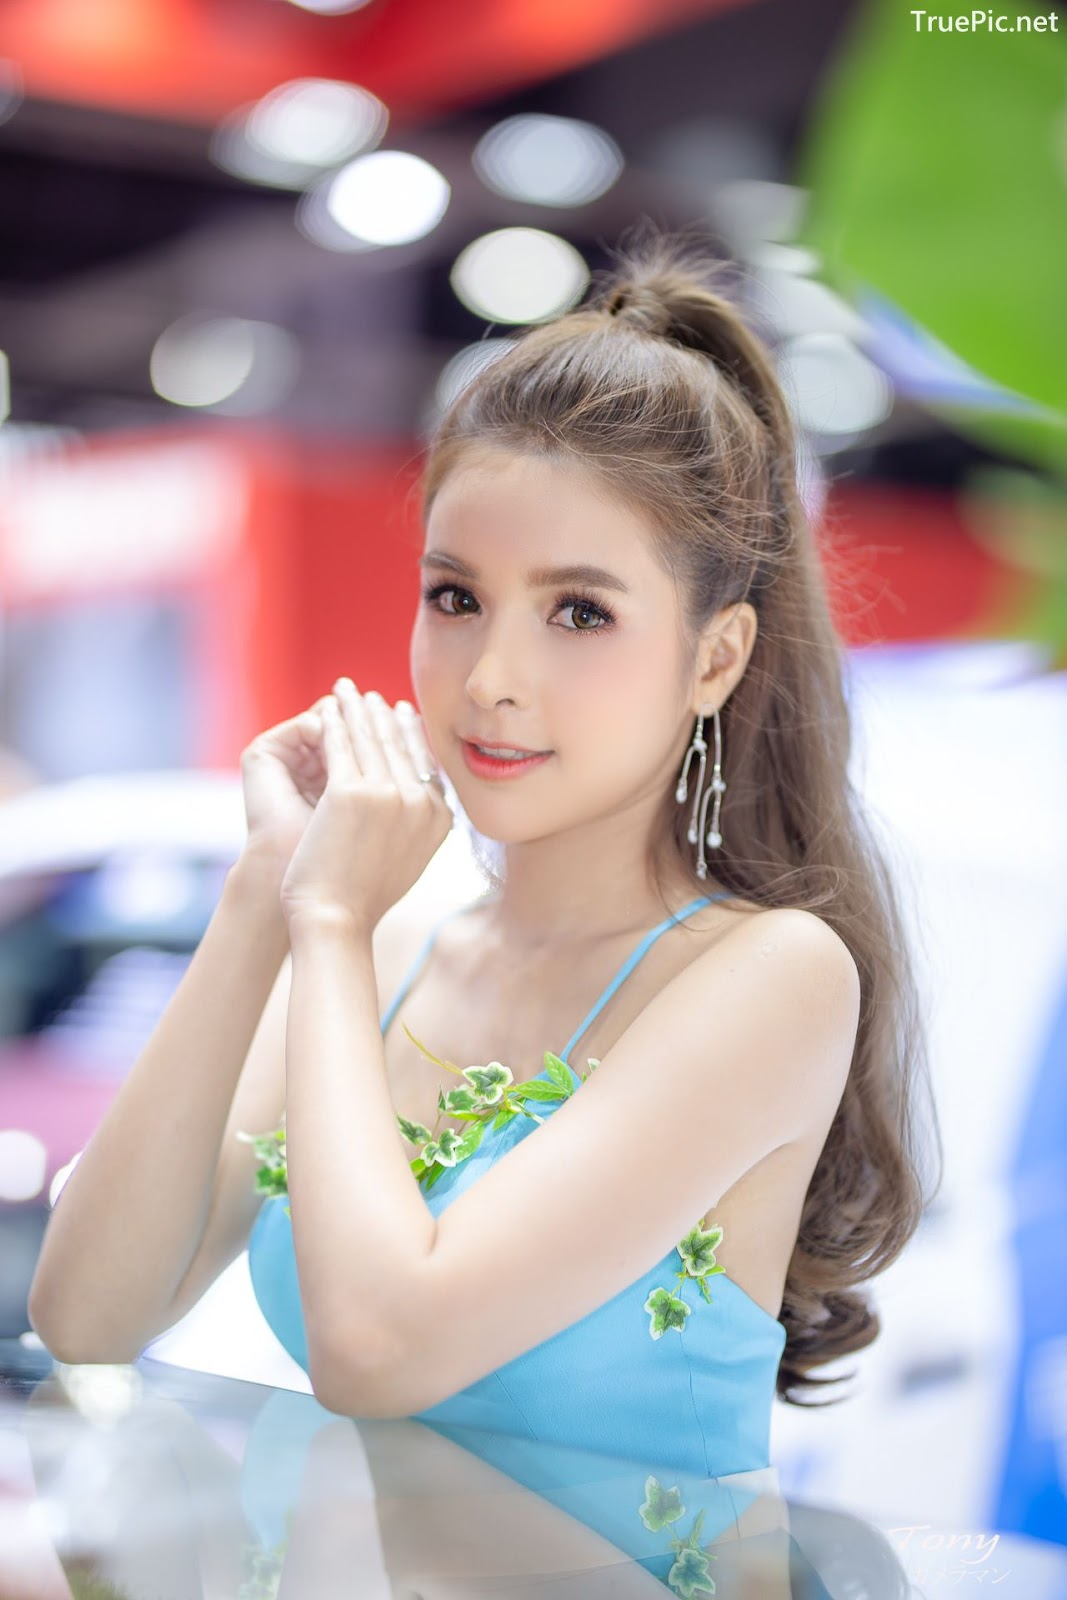 Image-Thailand-Hot-Model-Thai-Racing-Girl-At-Motor-Show-2019-TruePic.net- Picture-3